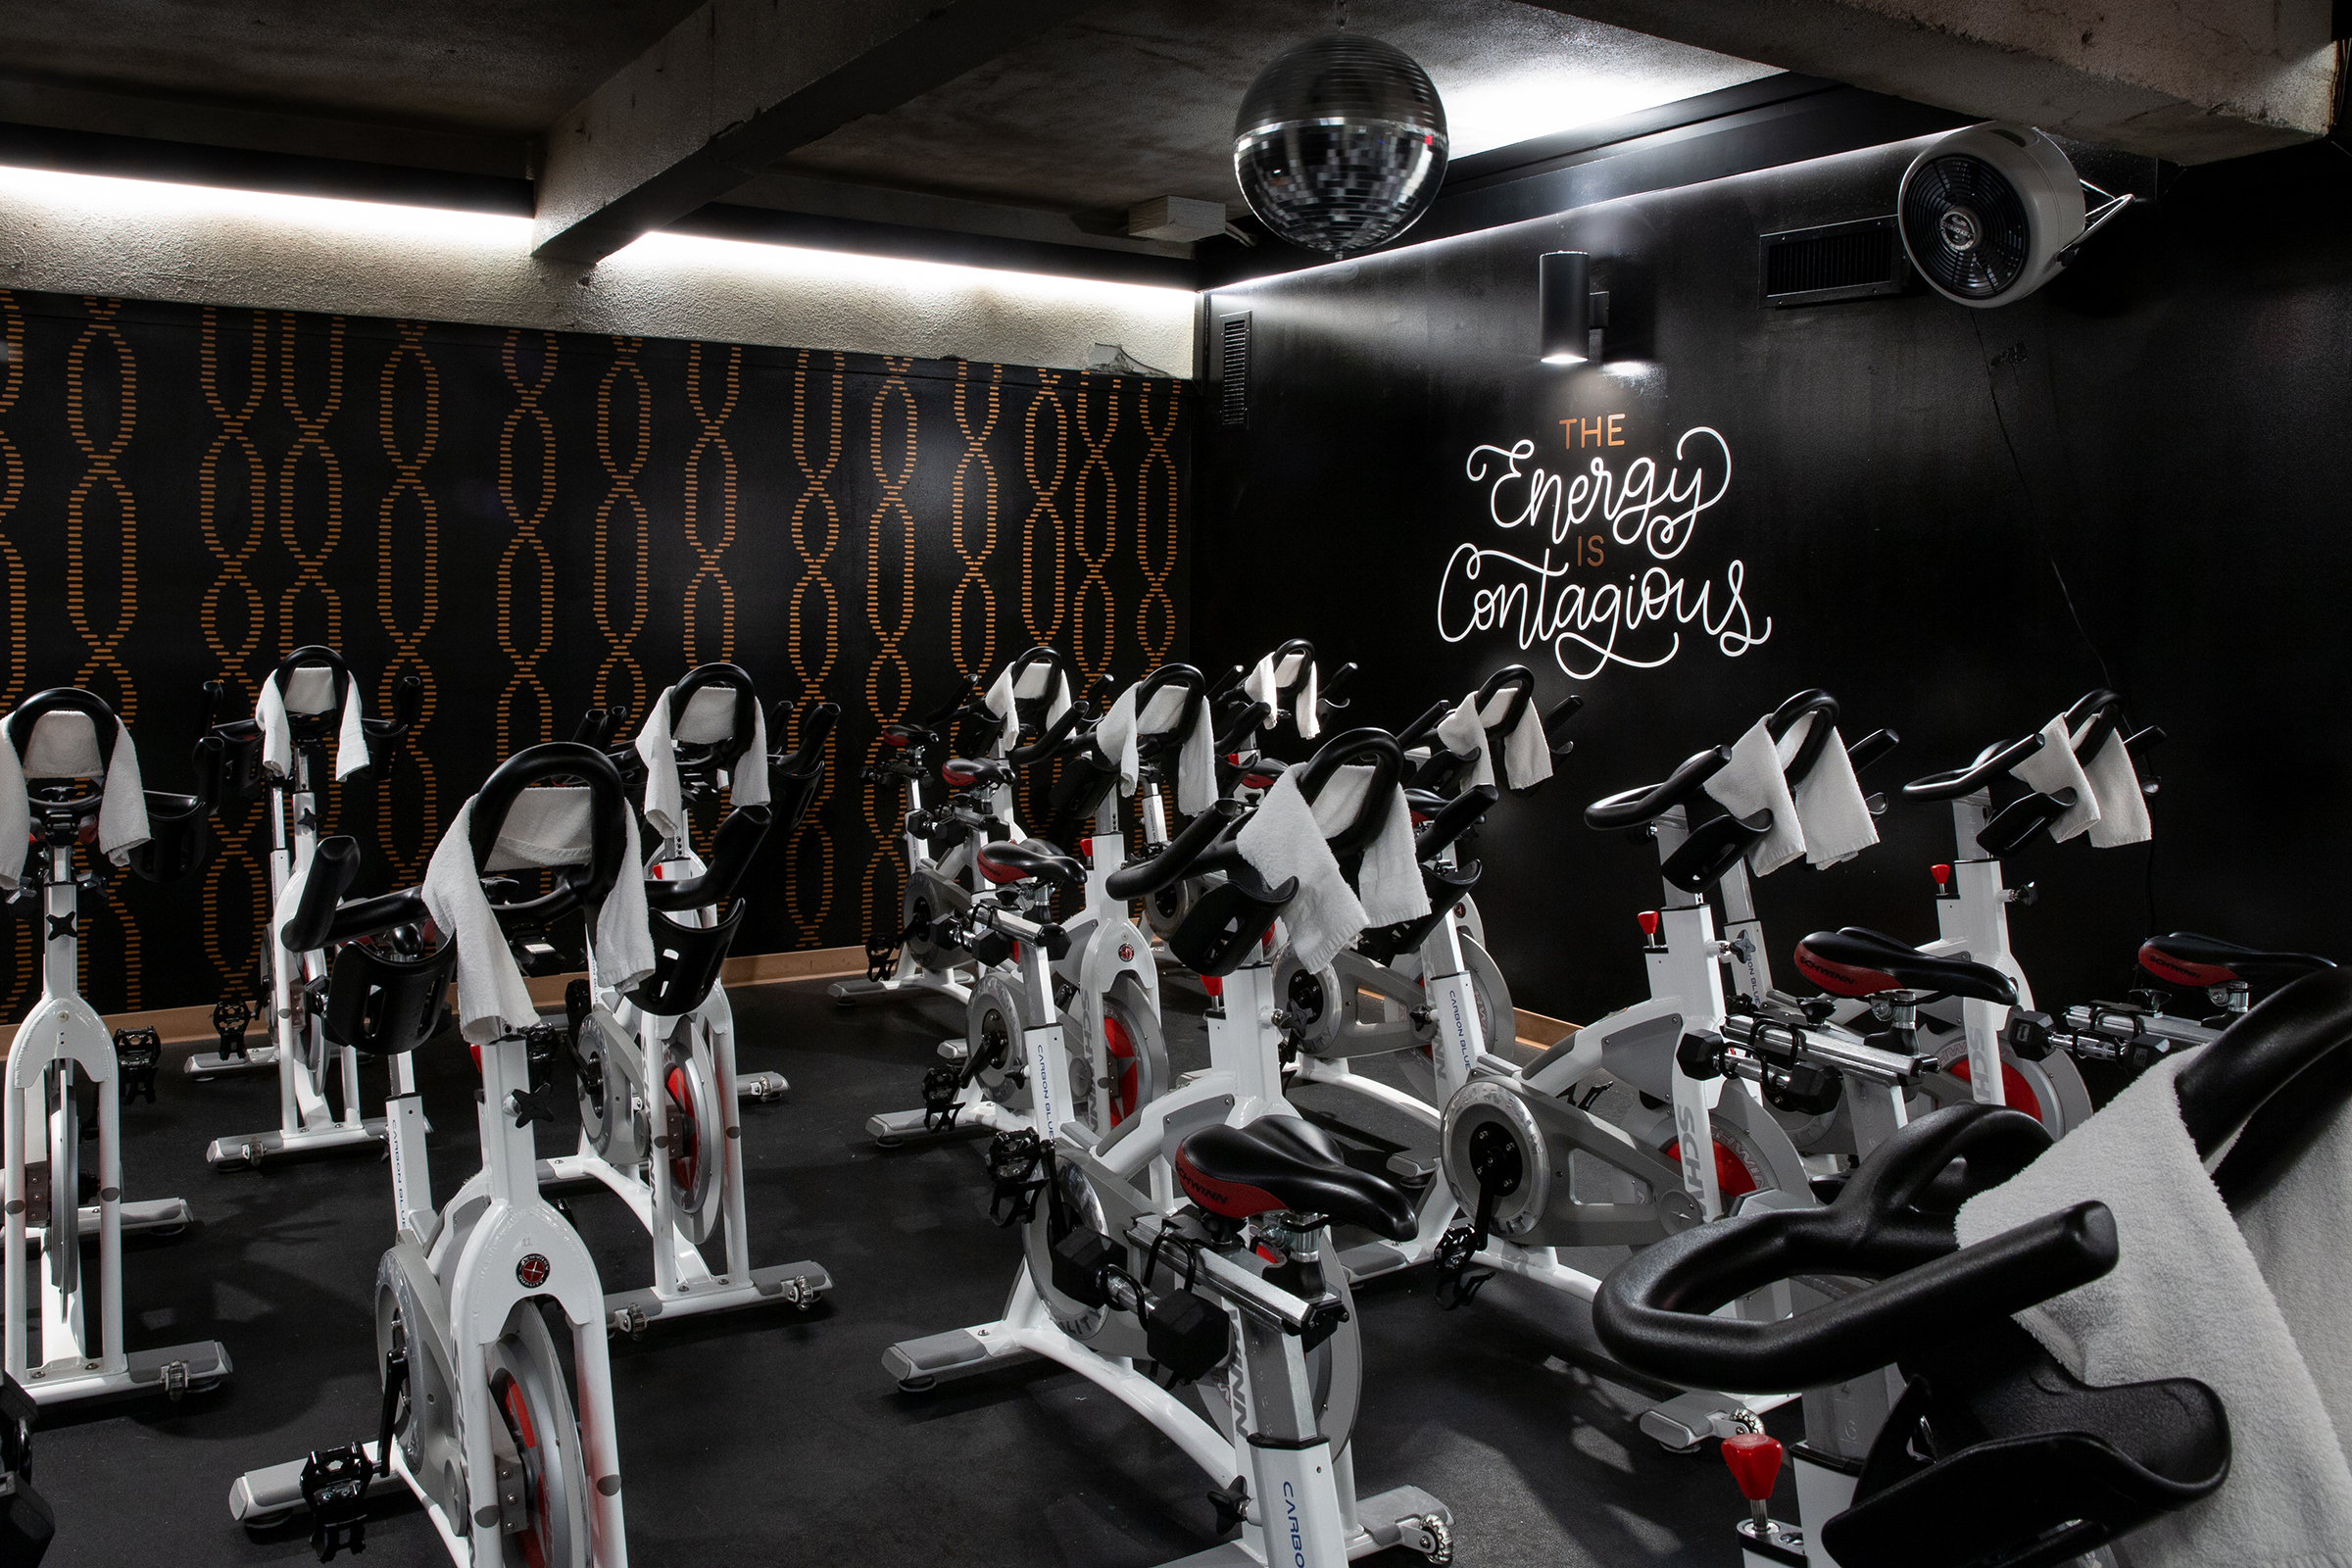 Natasia Designs Edmonton Alberta Graphic Designer and Hand-Lettering Artist Hive Fit Co Wall Murals Design featuring Calligraphy and a custom hand-lettered script that reflects their fitness studio branding spin row yoga classes